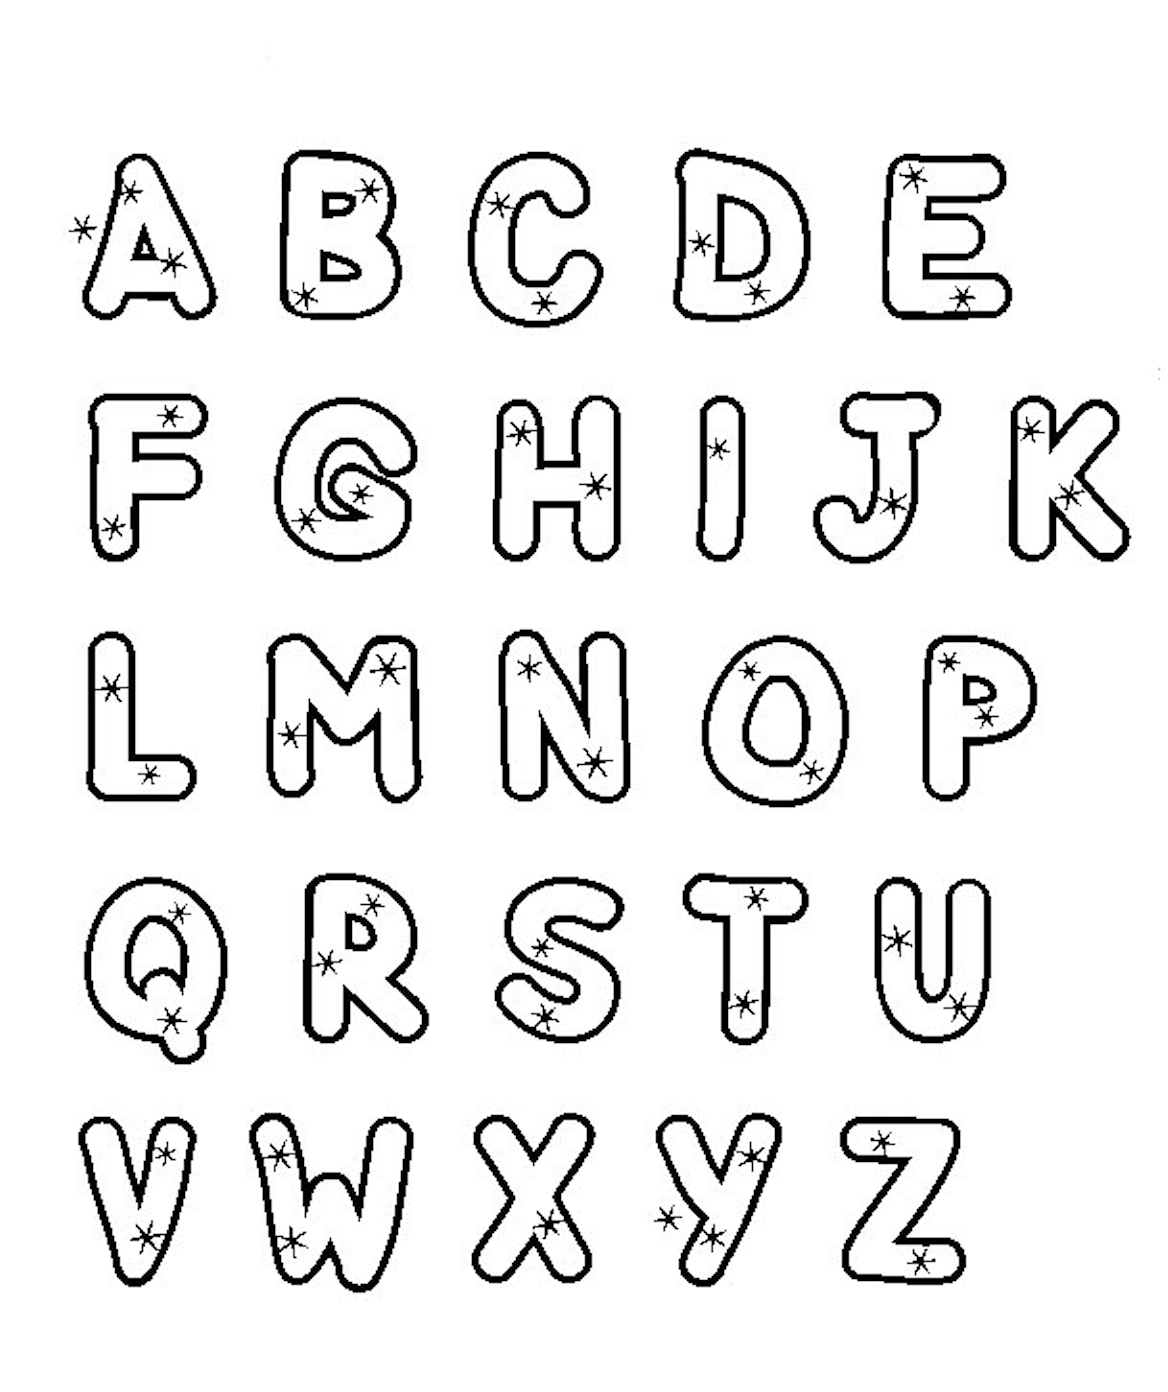 colouring letters a to z free free printable alphabet coloring pages a z download a colouring z letters to